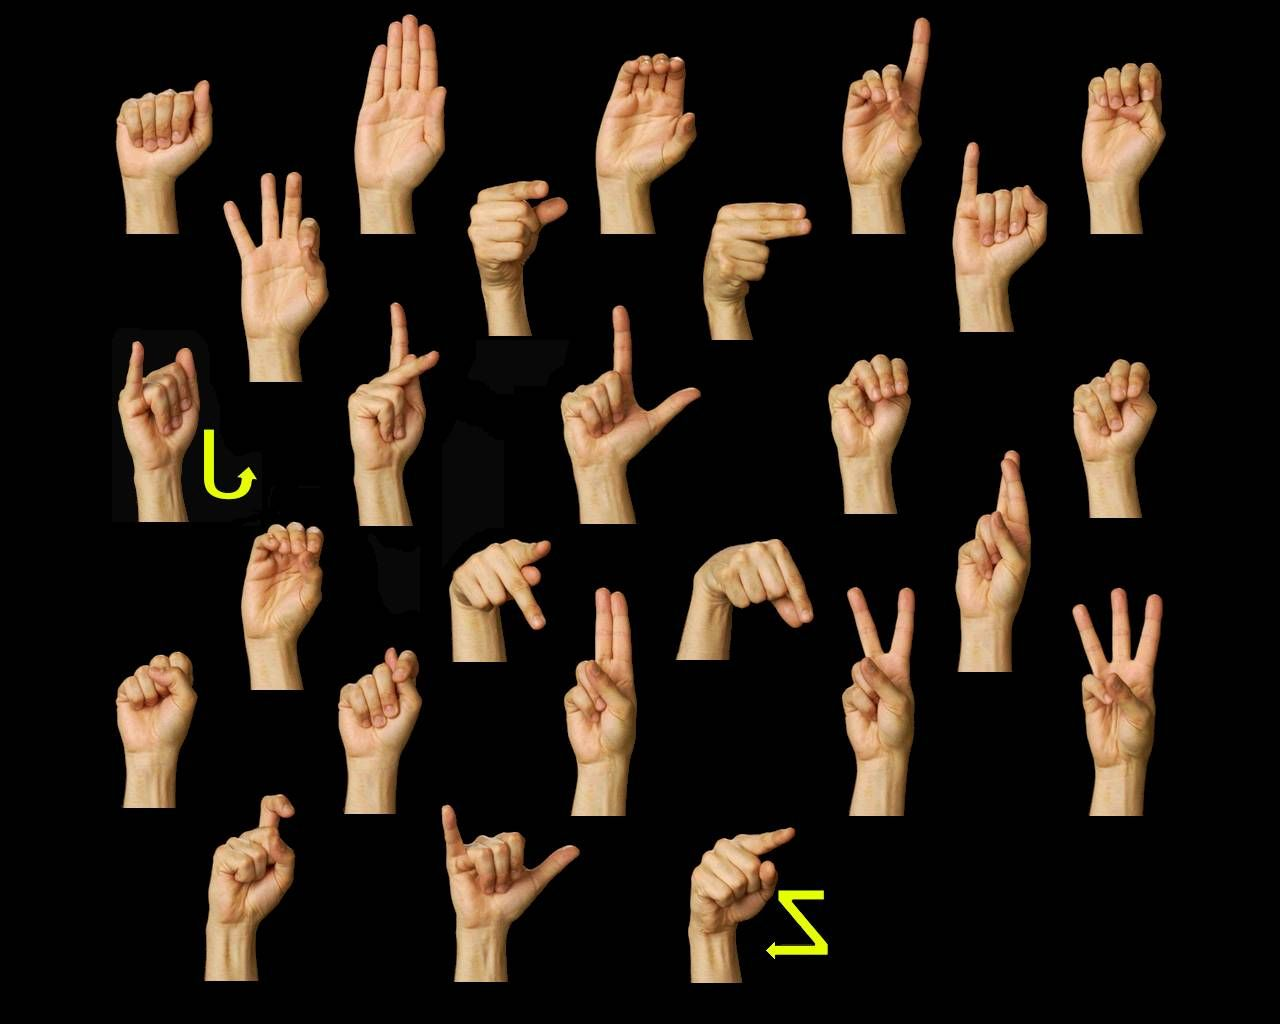 Practice Fingerspelling You Can Make It Easier Using Slow